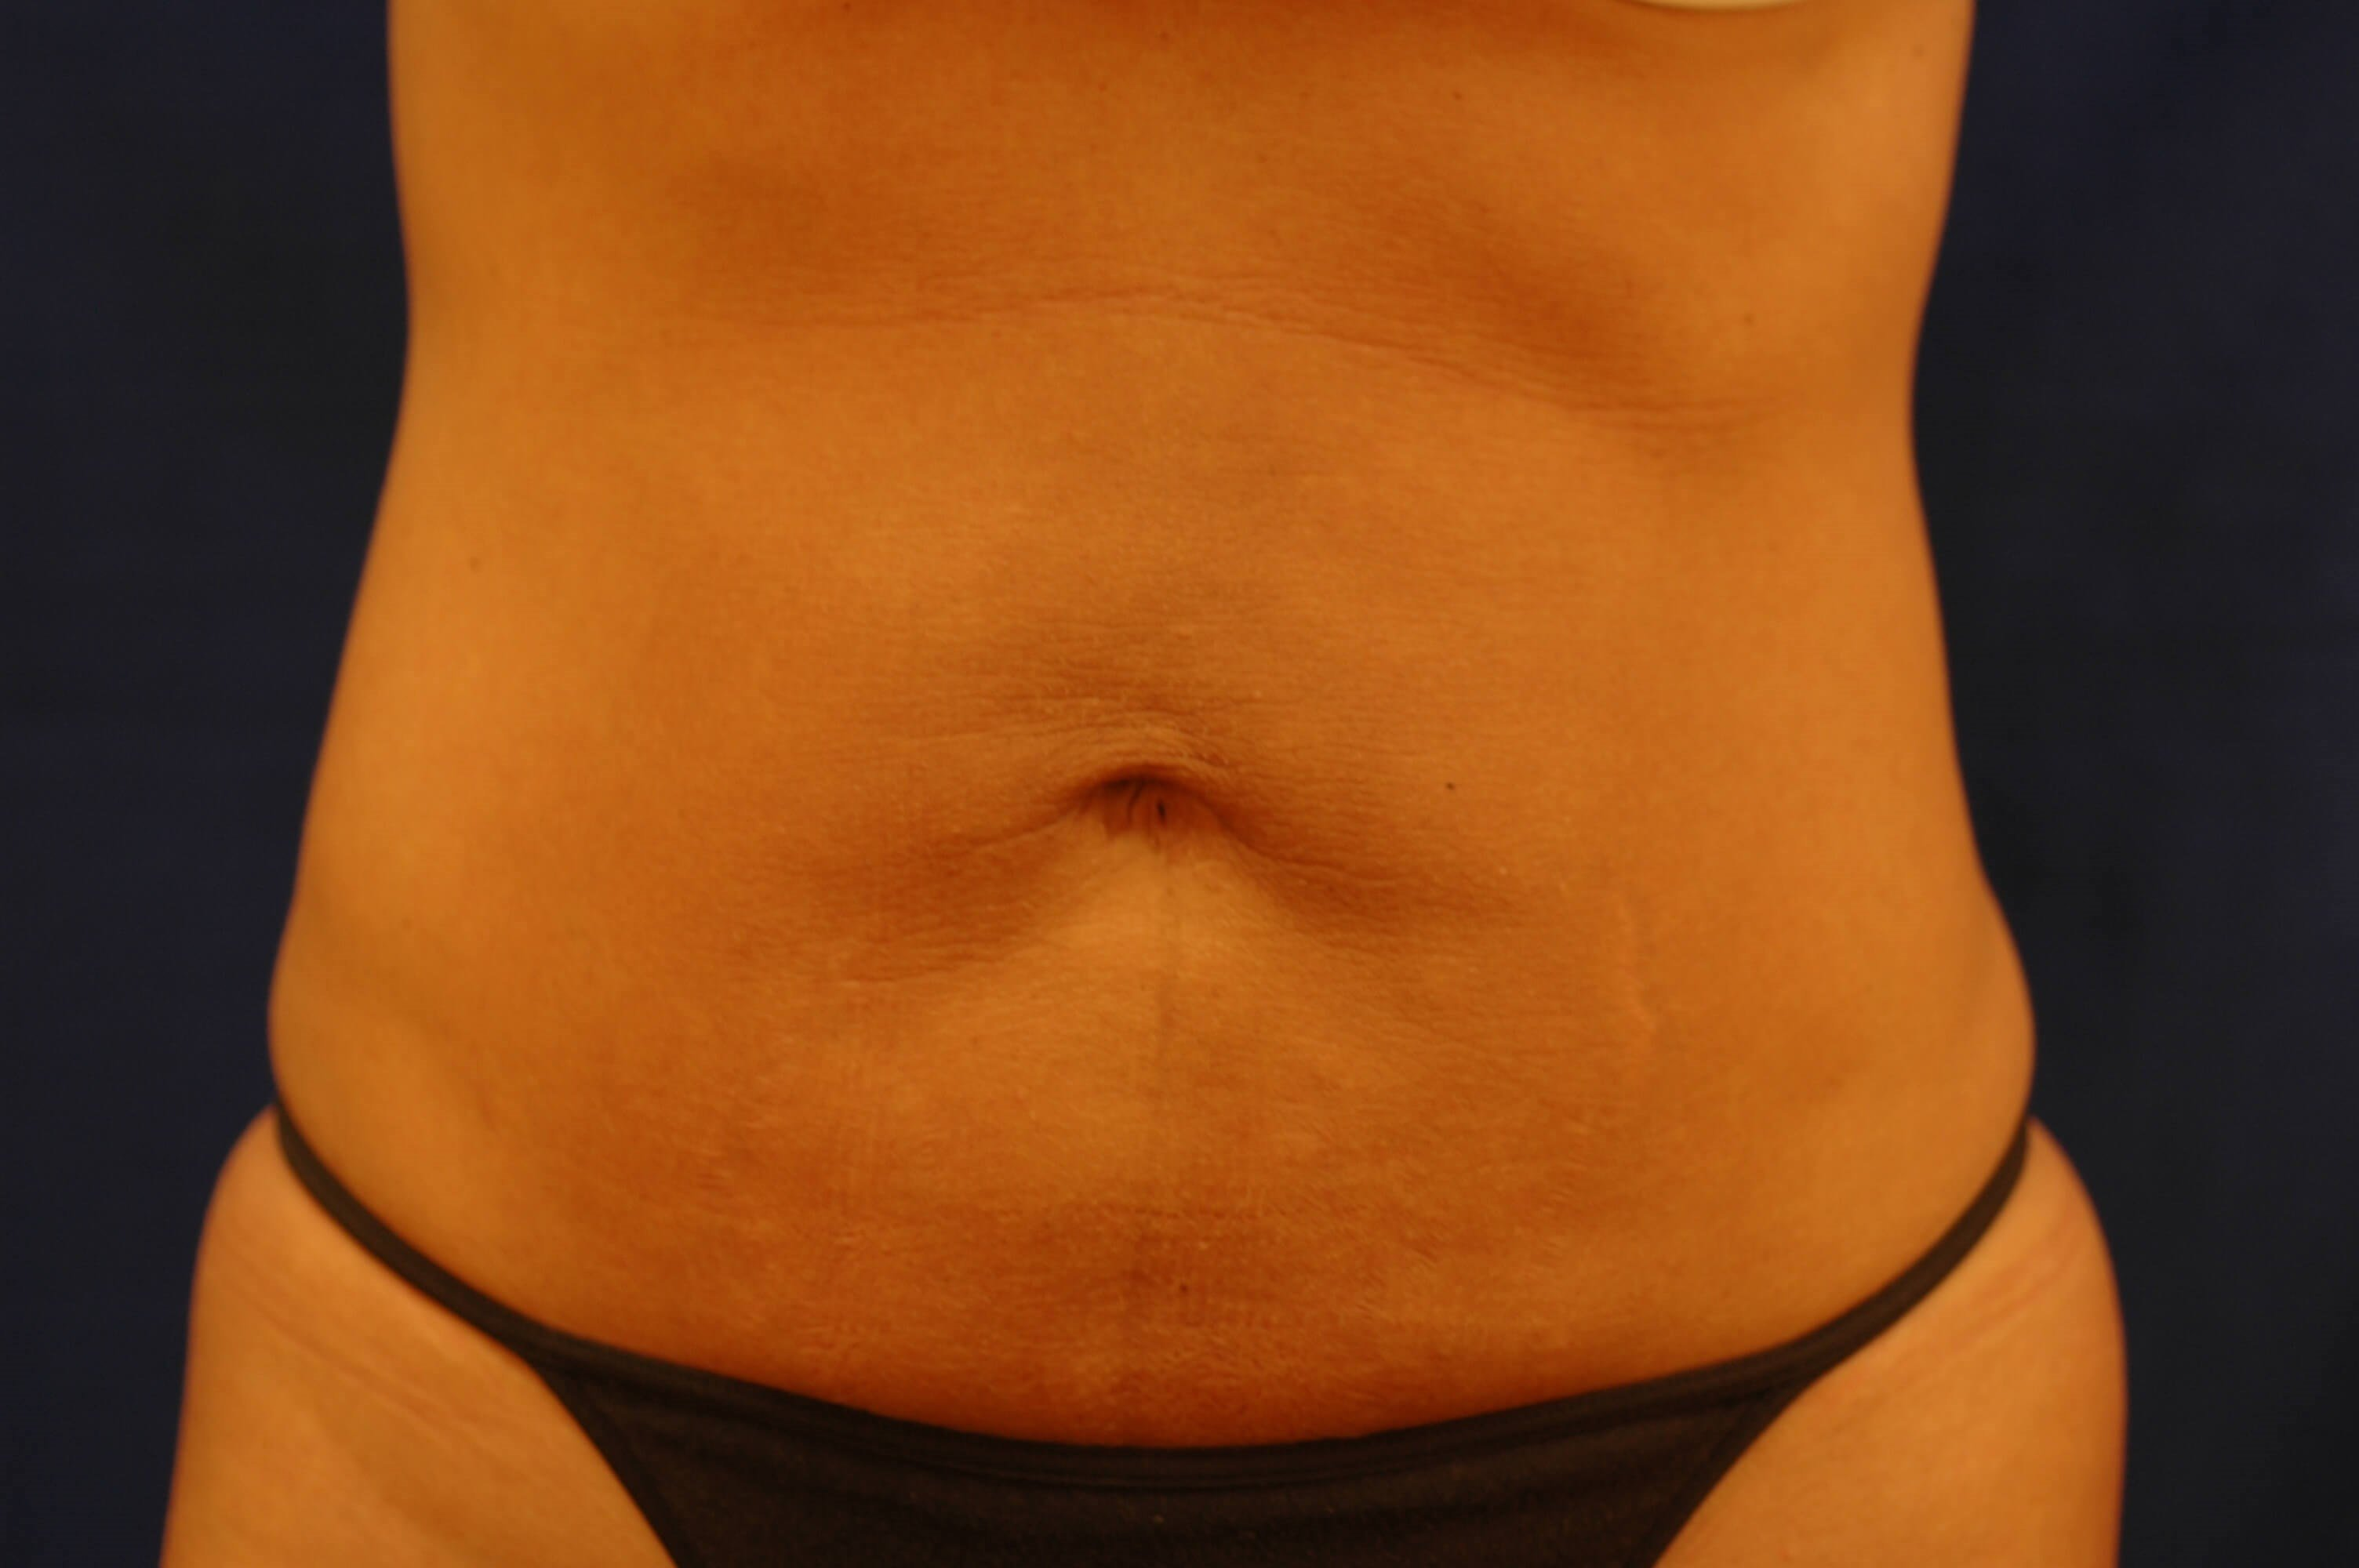 Newport Beach Liposuction Before